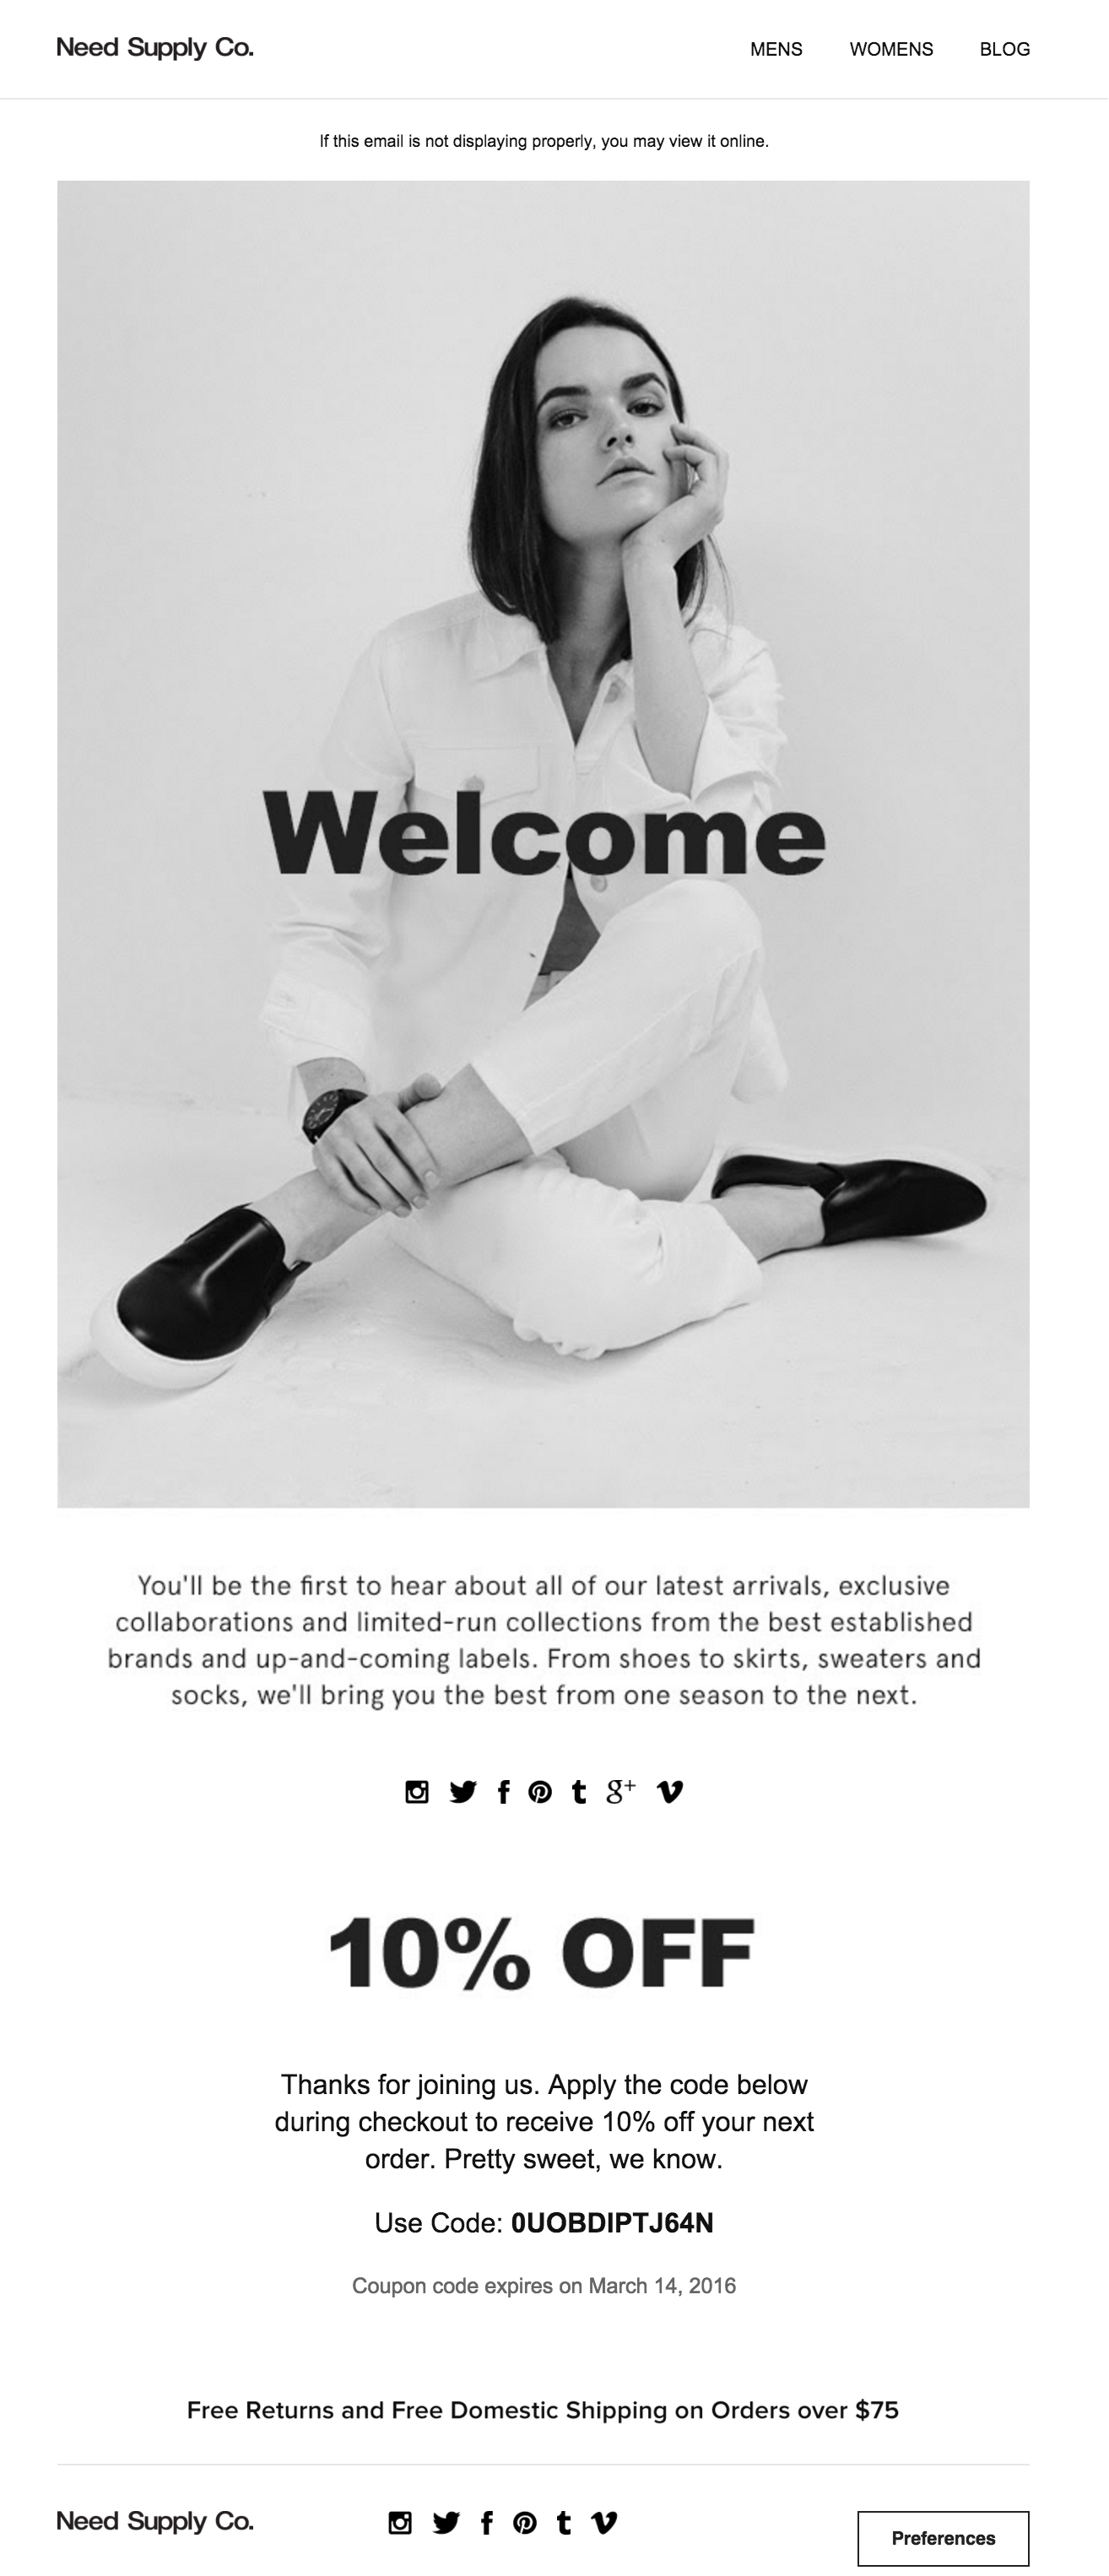 RH Mail - Welcome | EDM | Pinterest | Email design, Email marketing ...